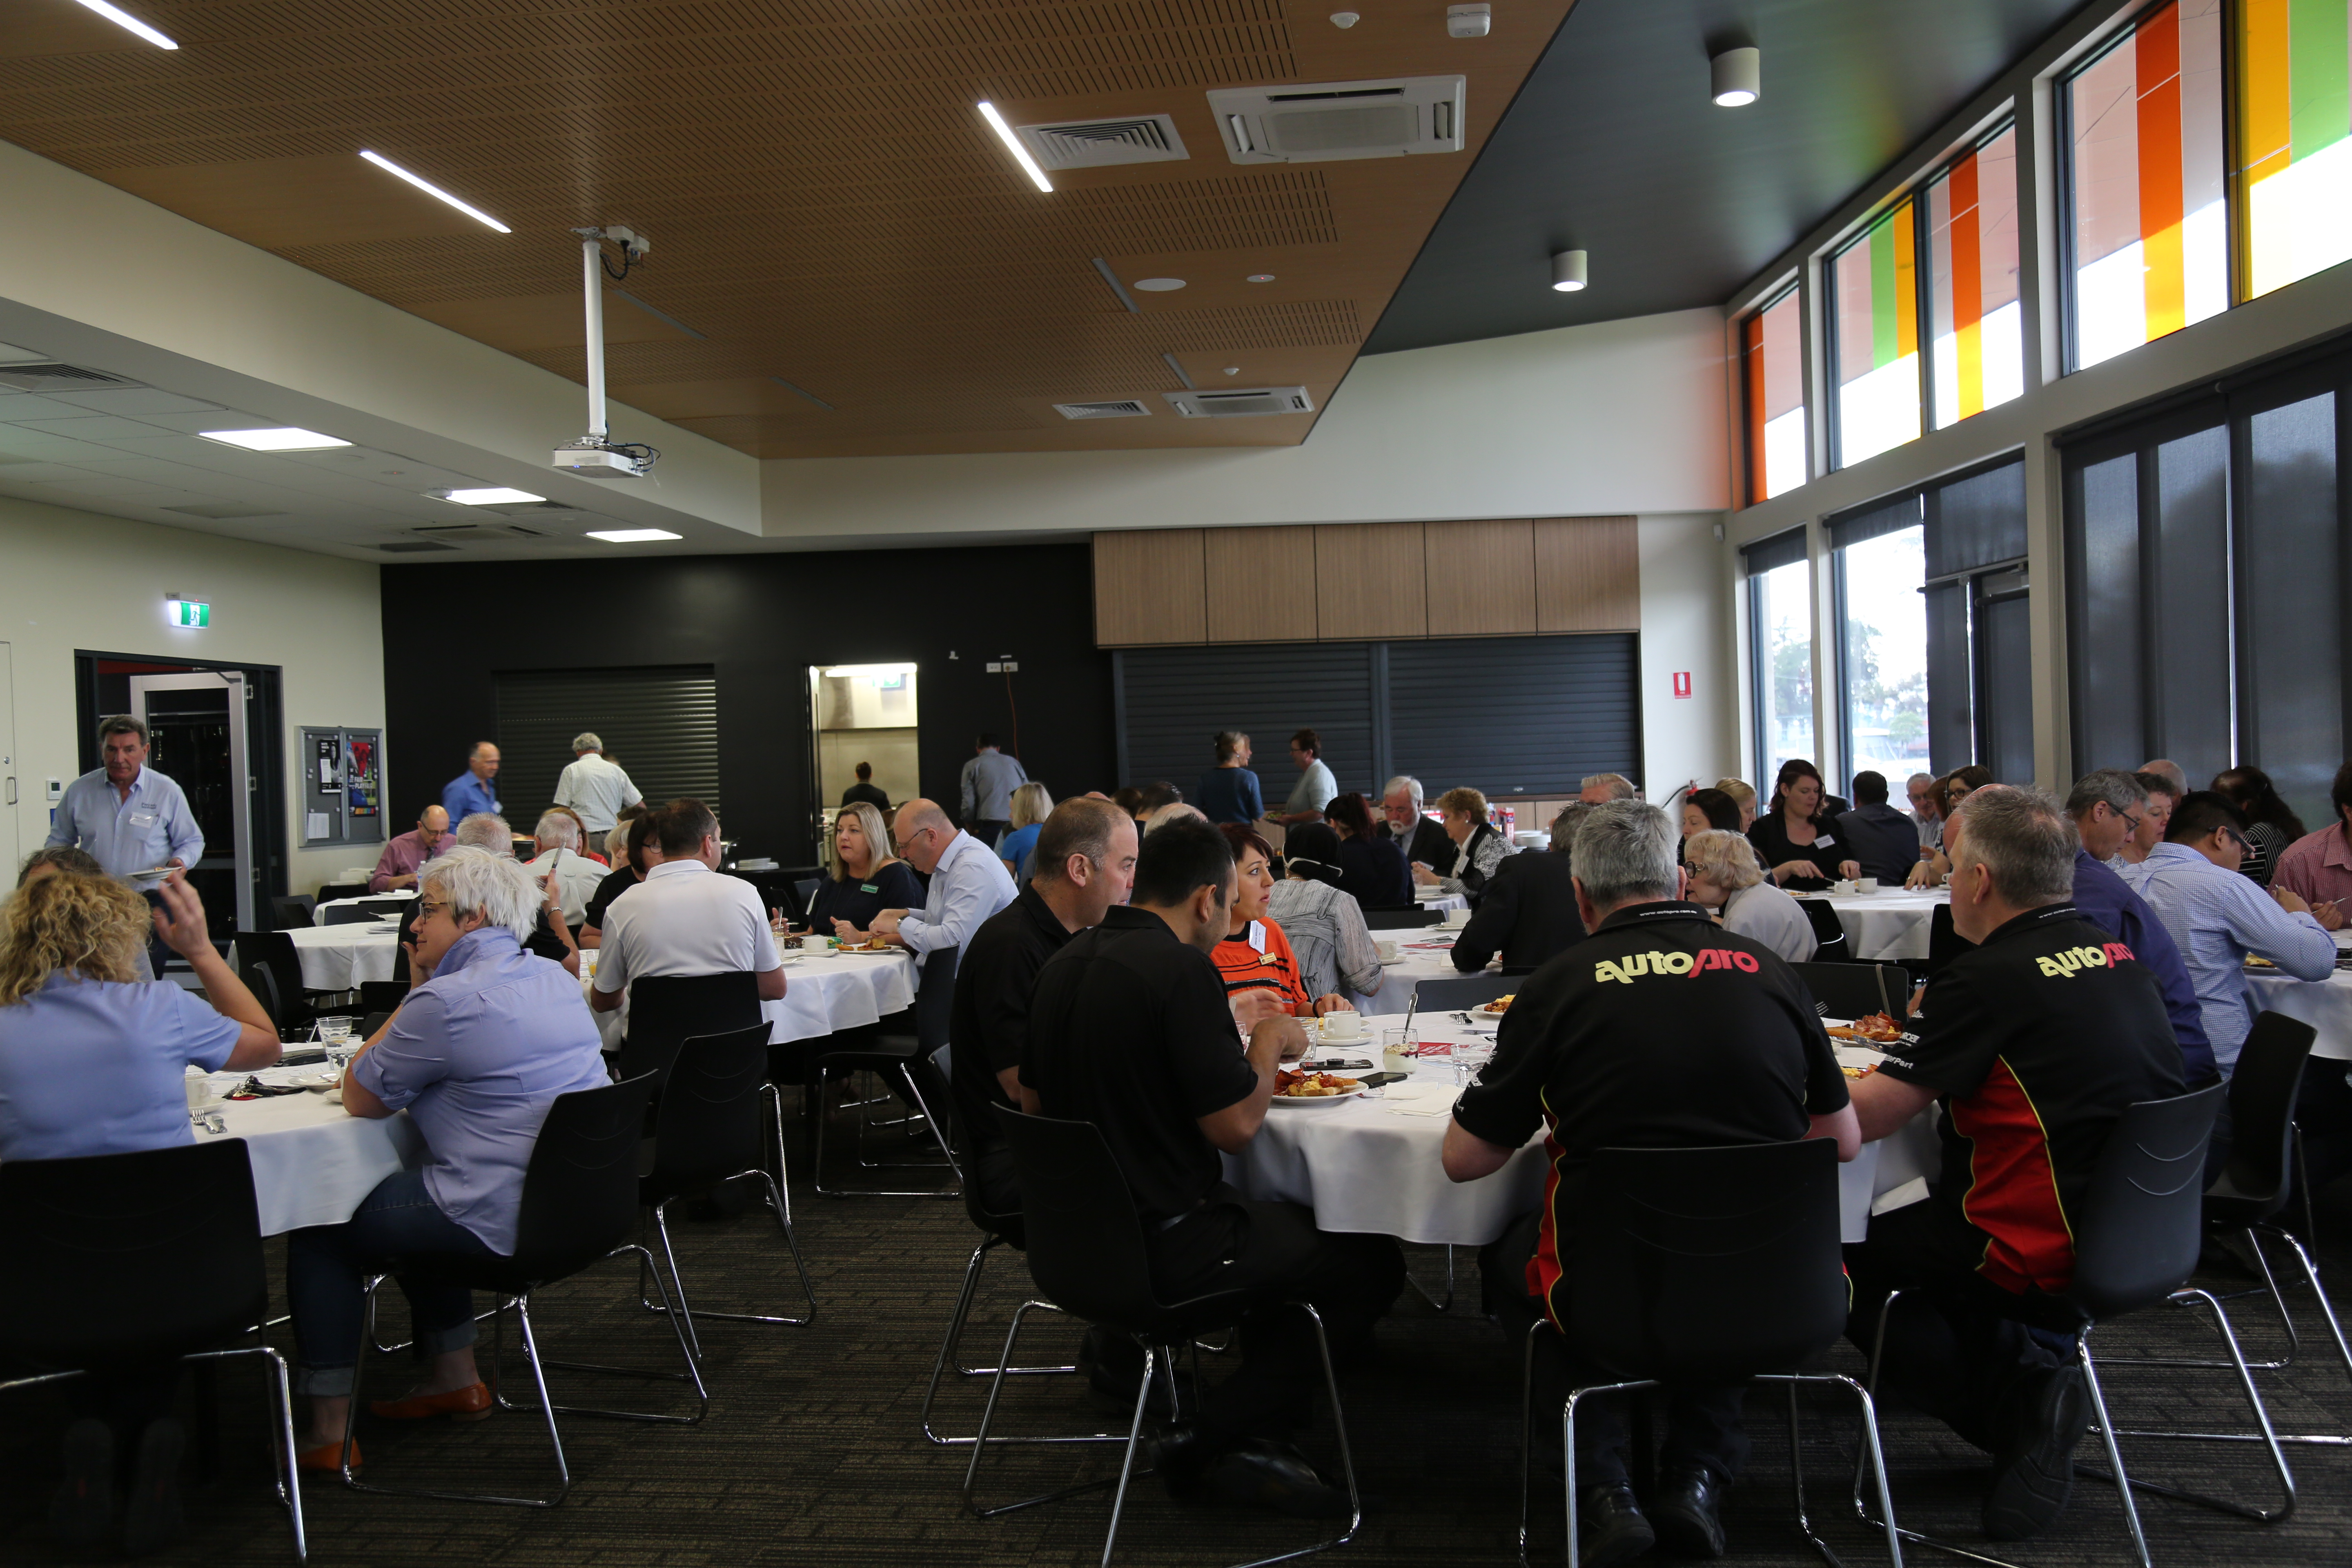 Come along to the next ARCC Business Breakfast